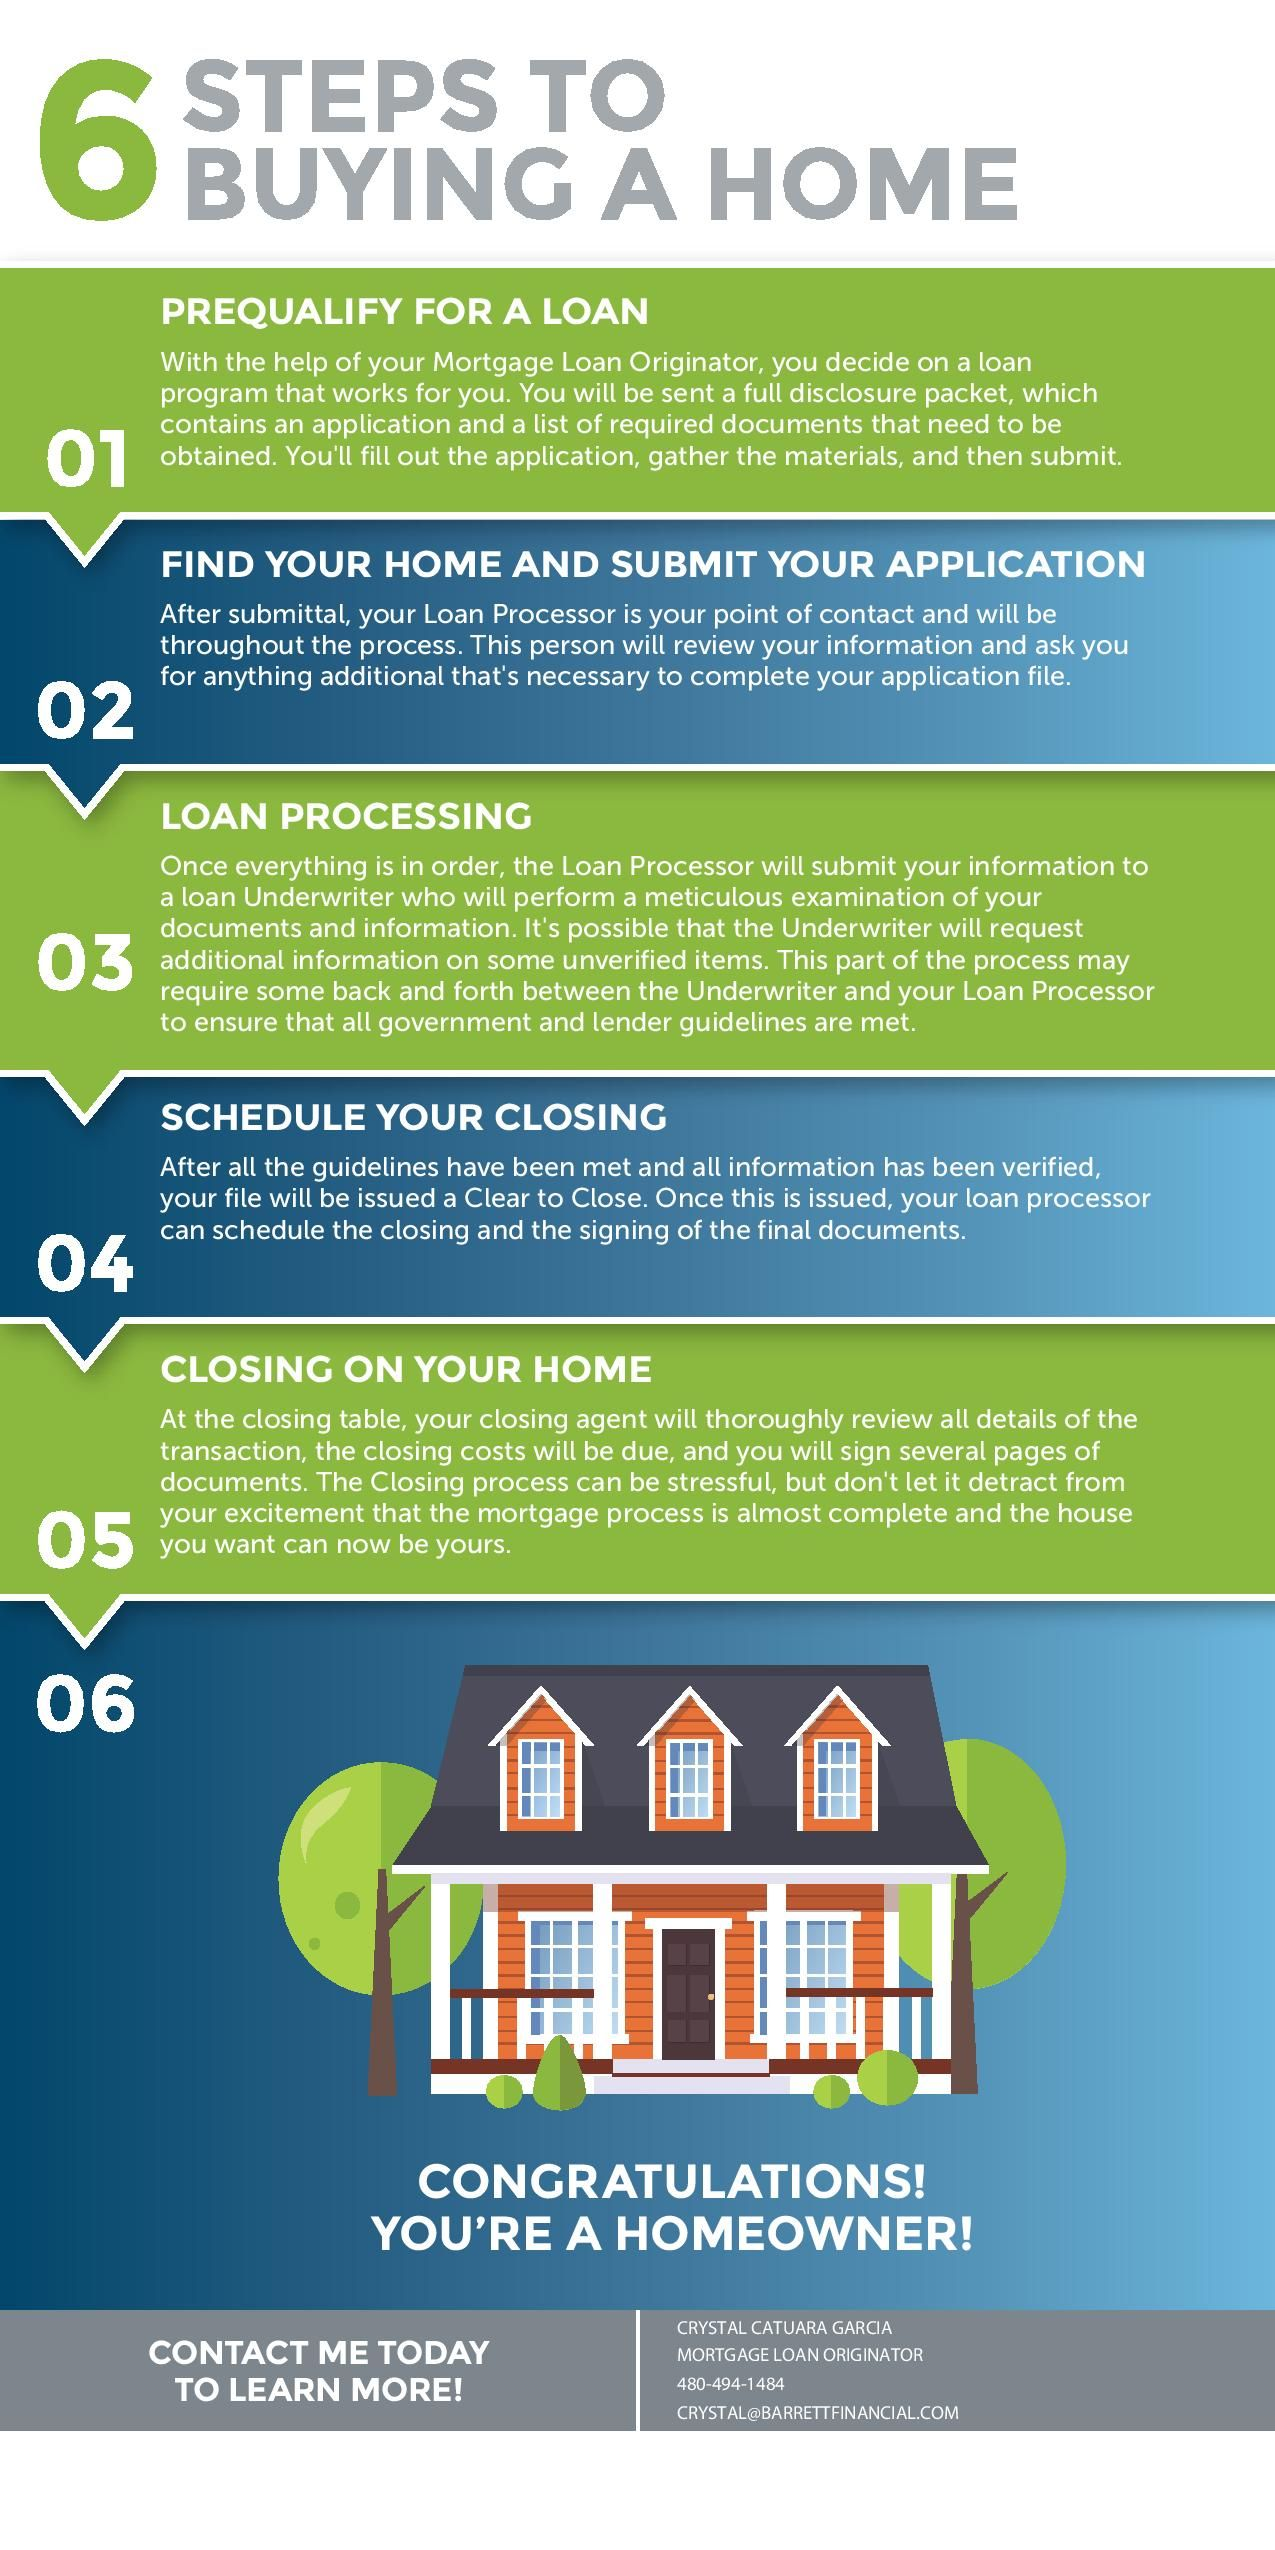 6 Steps To Homeownership Home Ownership Home Buying Process Home Buying